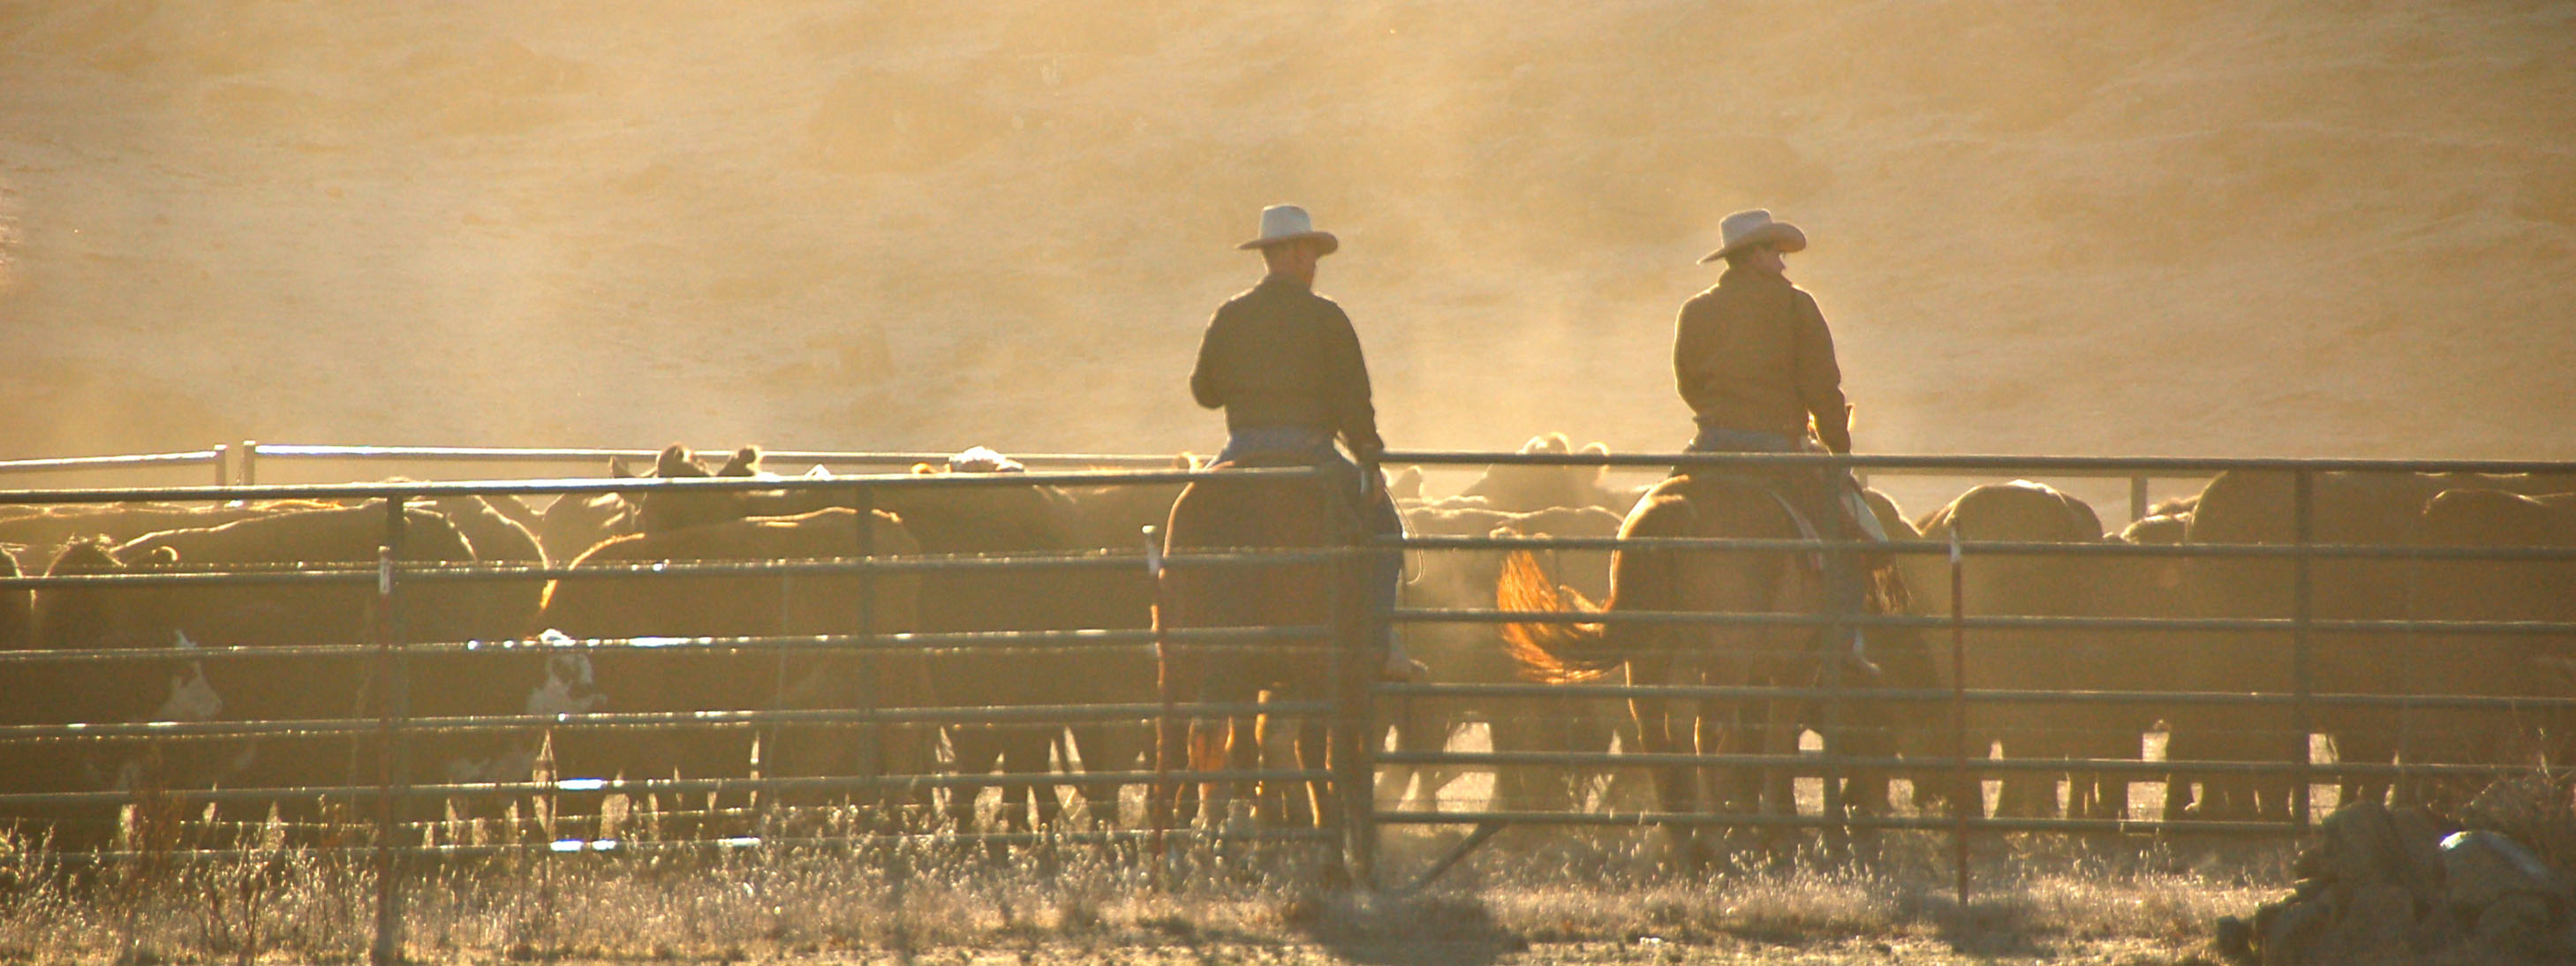 Two ranchers with cowboy hats on horseback in dusty corral filled with cattle